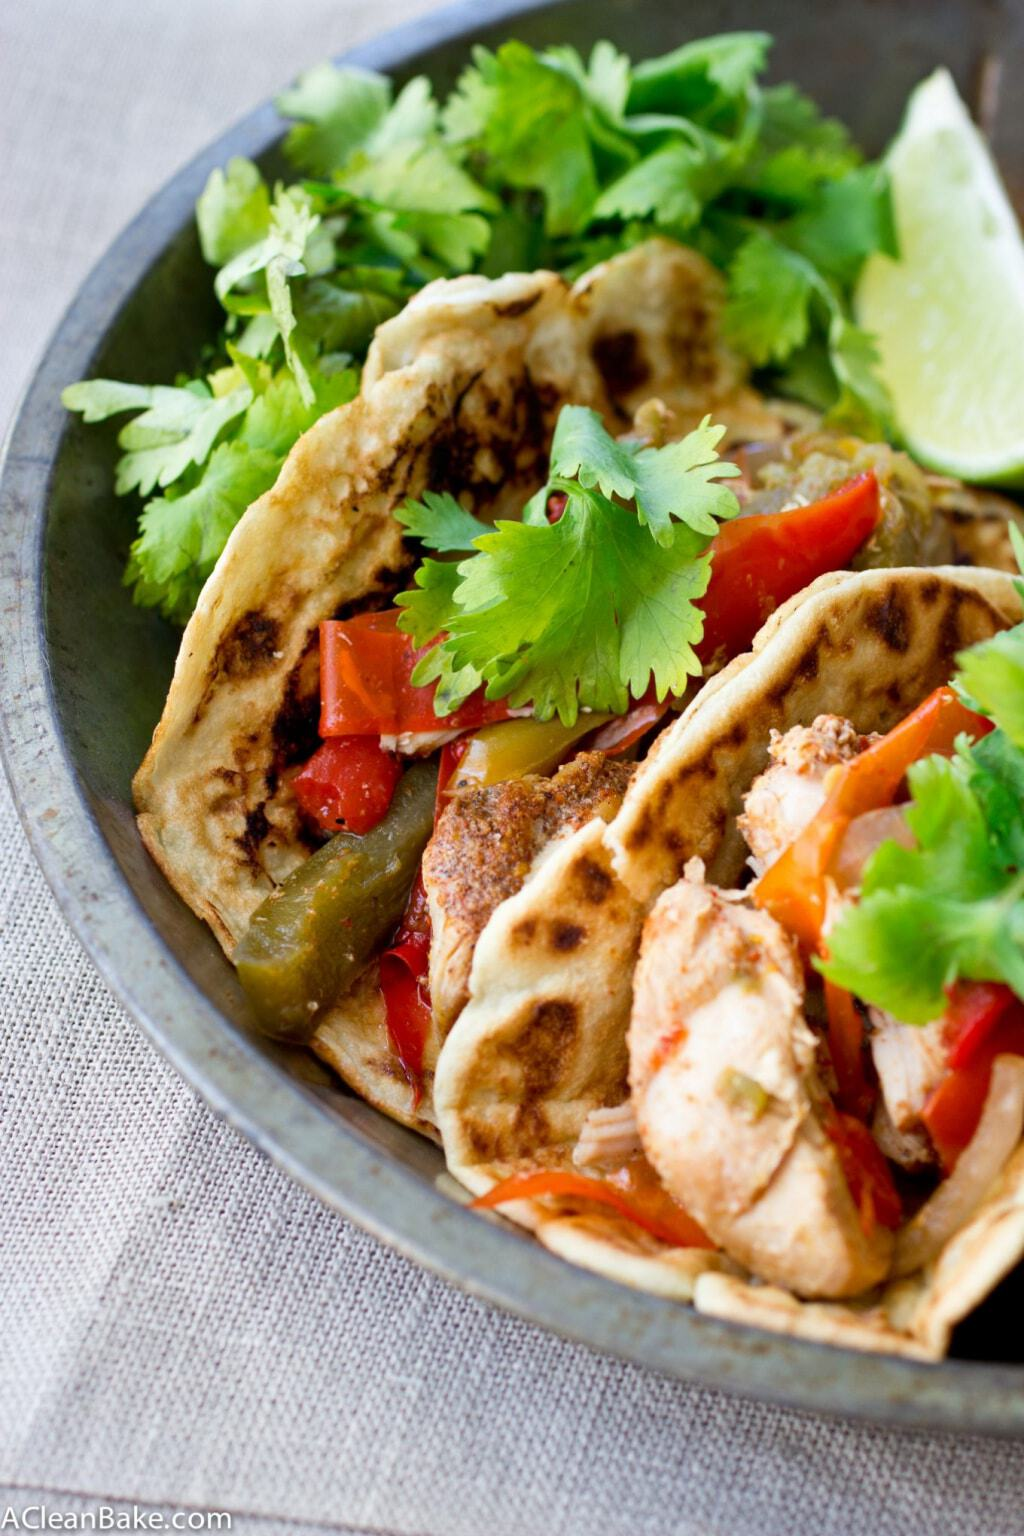 Slow Cooker Chicken Fajitas (Gluten Free, Paleo, and Whole30)